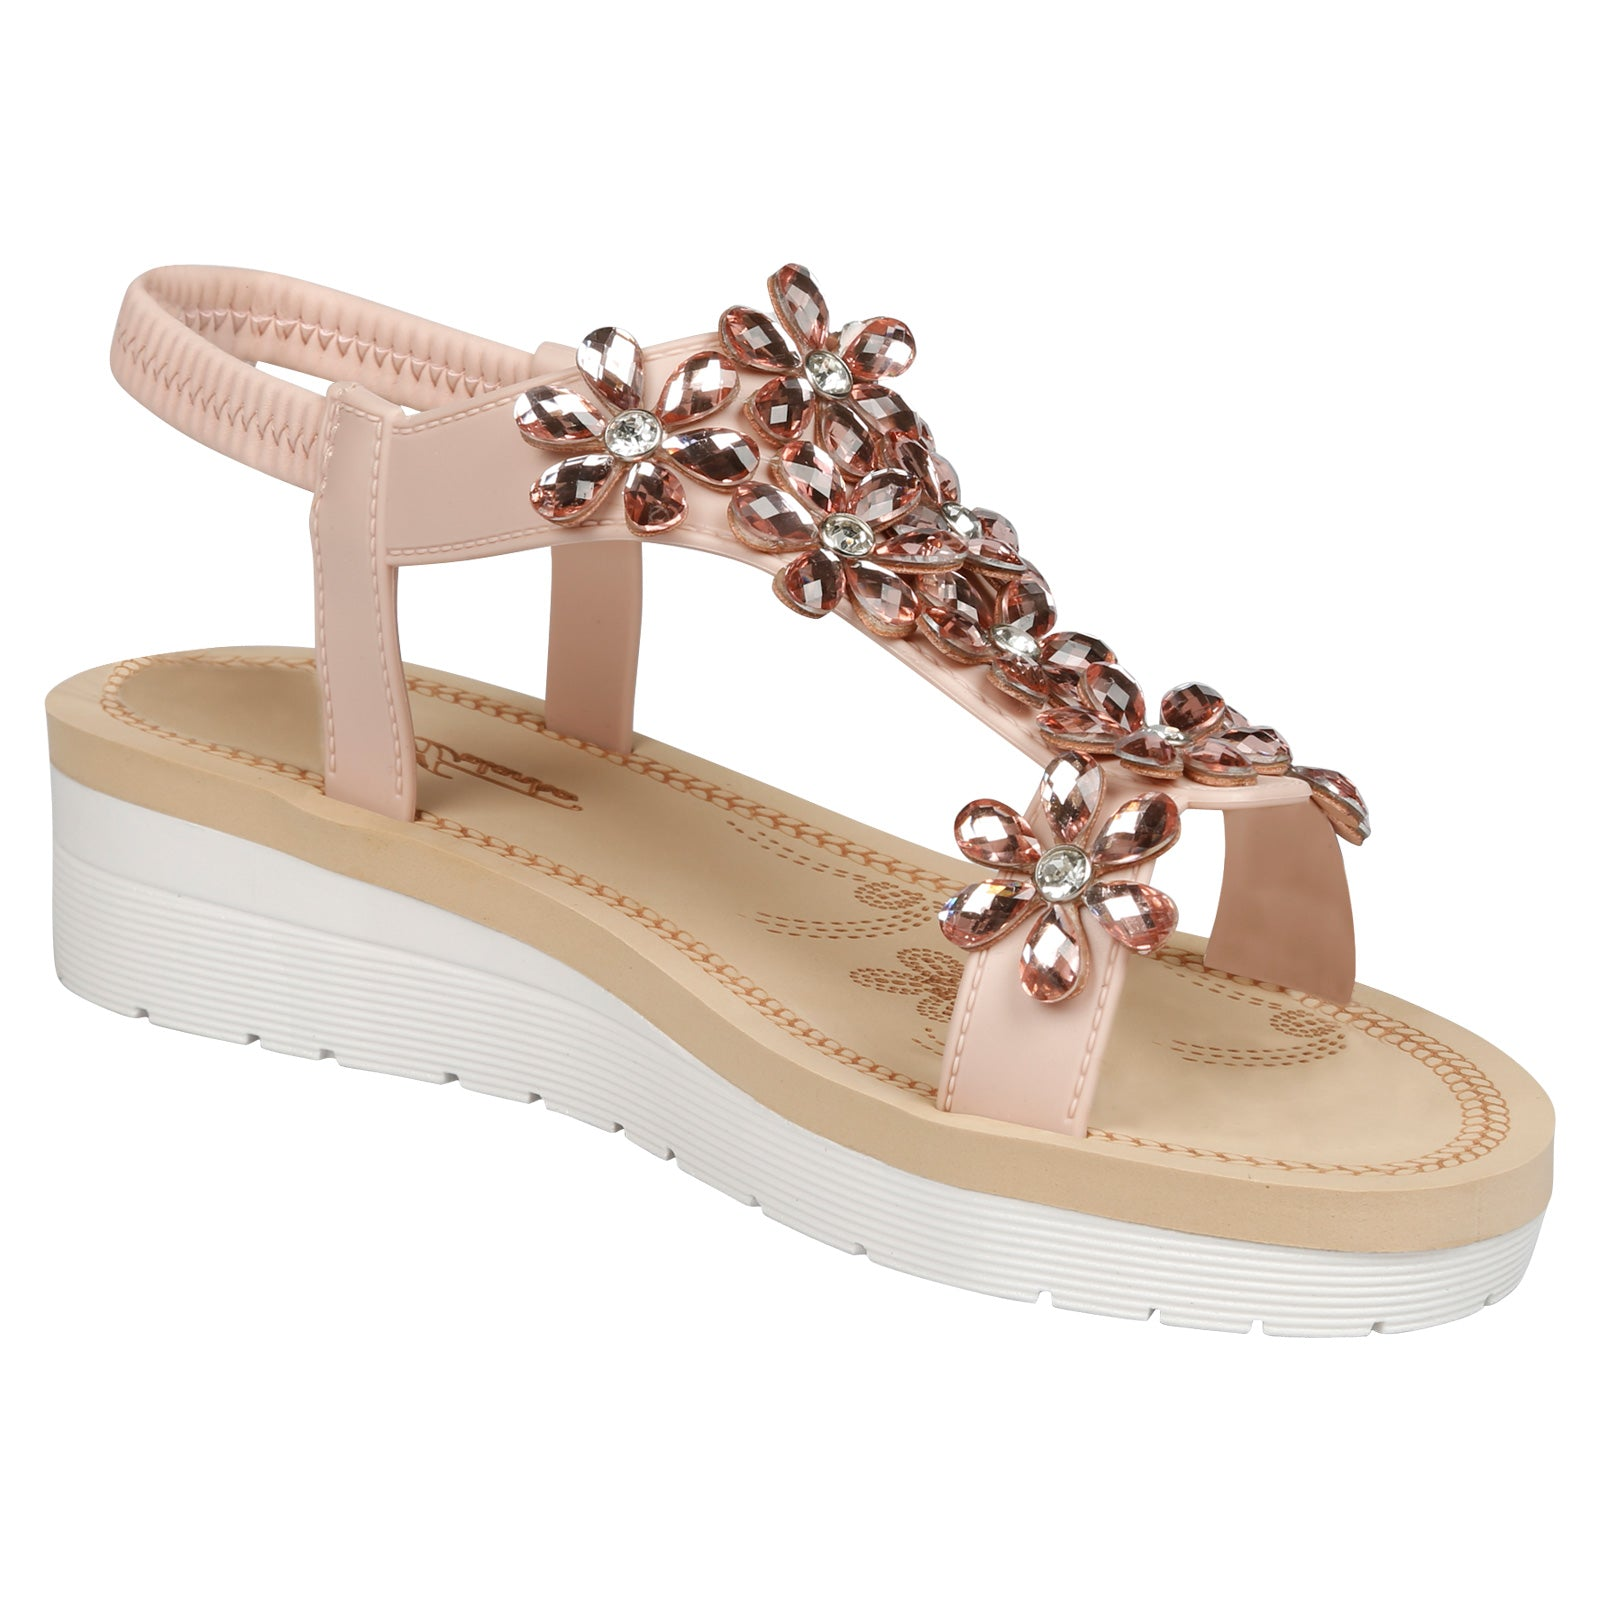 Demeter Flatform Floral Jewel Sandals in Pink Faux Leather - Feet First Fashion